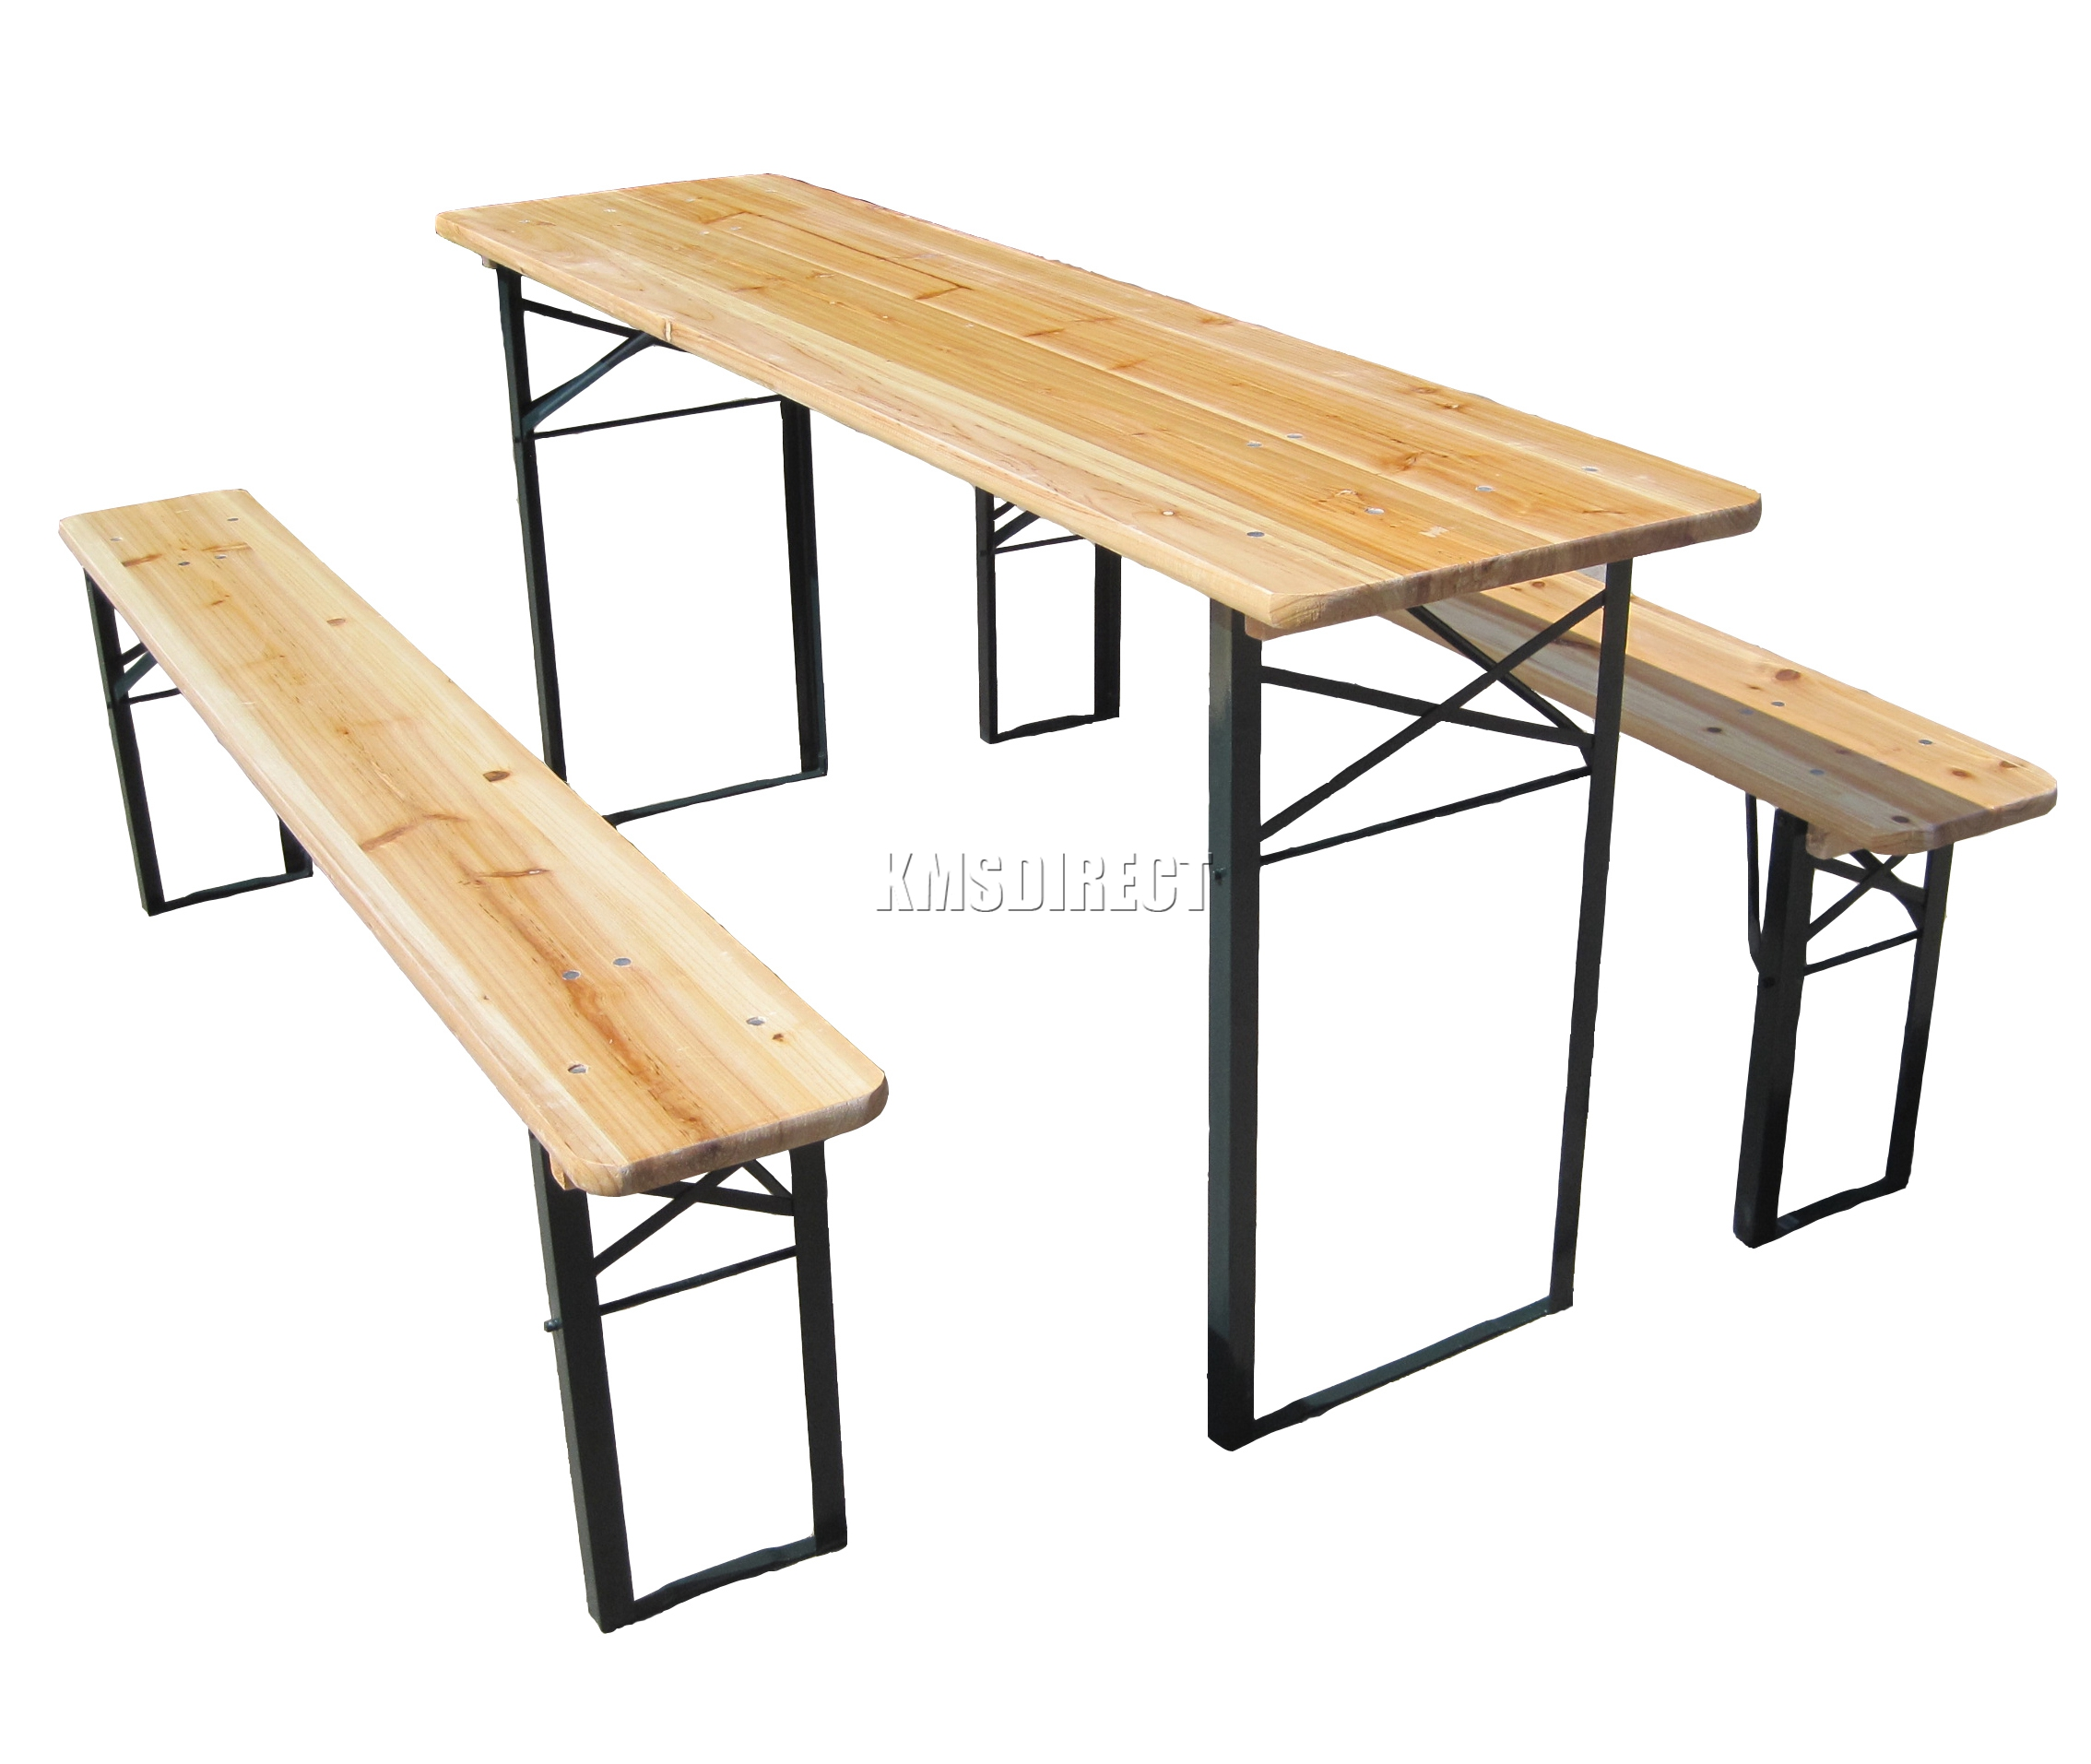 sentinel outdoor wooden folding beer table bench set trestle garden furniture steel leg - Garden Furniture Steel